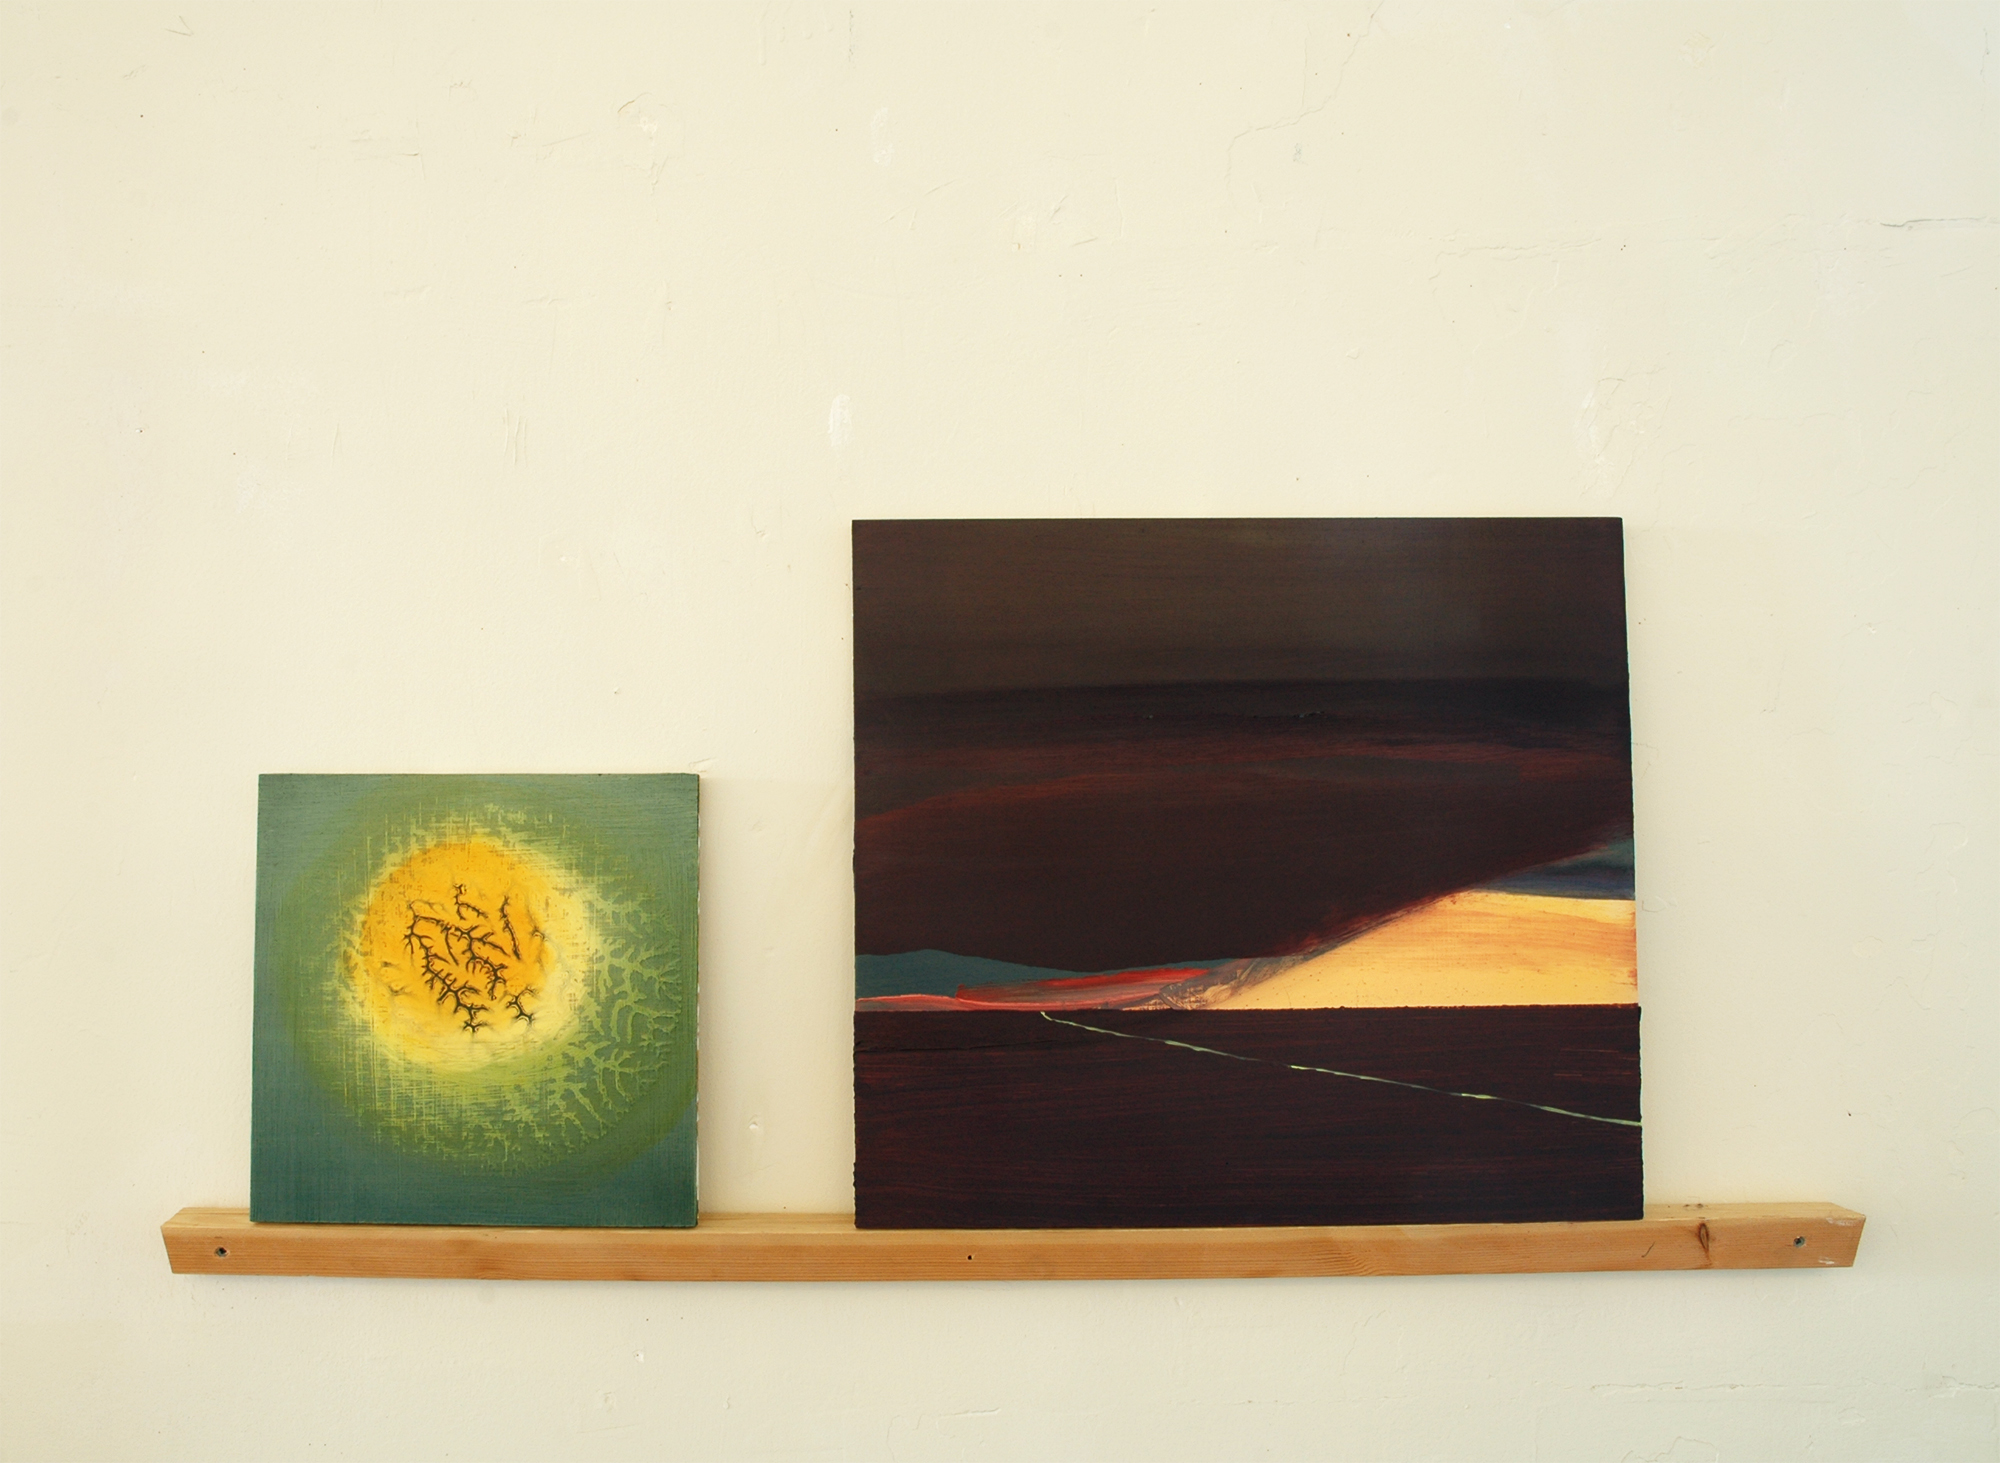 we shared a horizon, 2010, oil on panels, wood shelf, 42 x 24